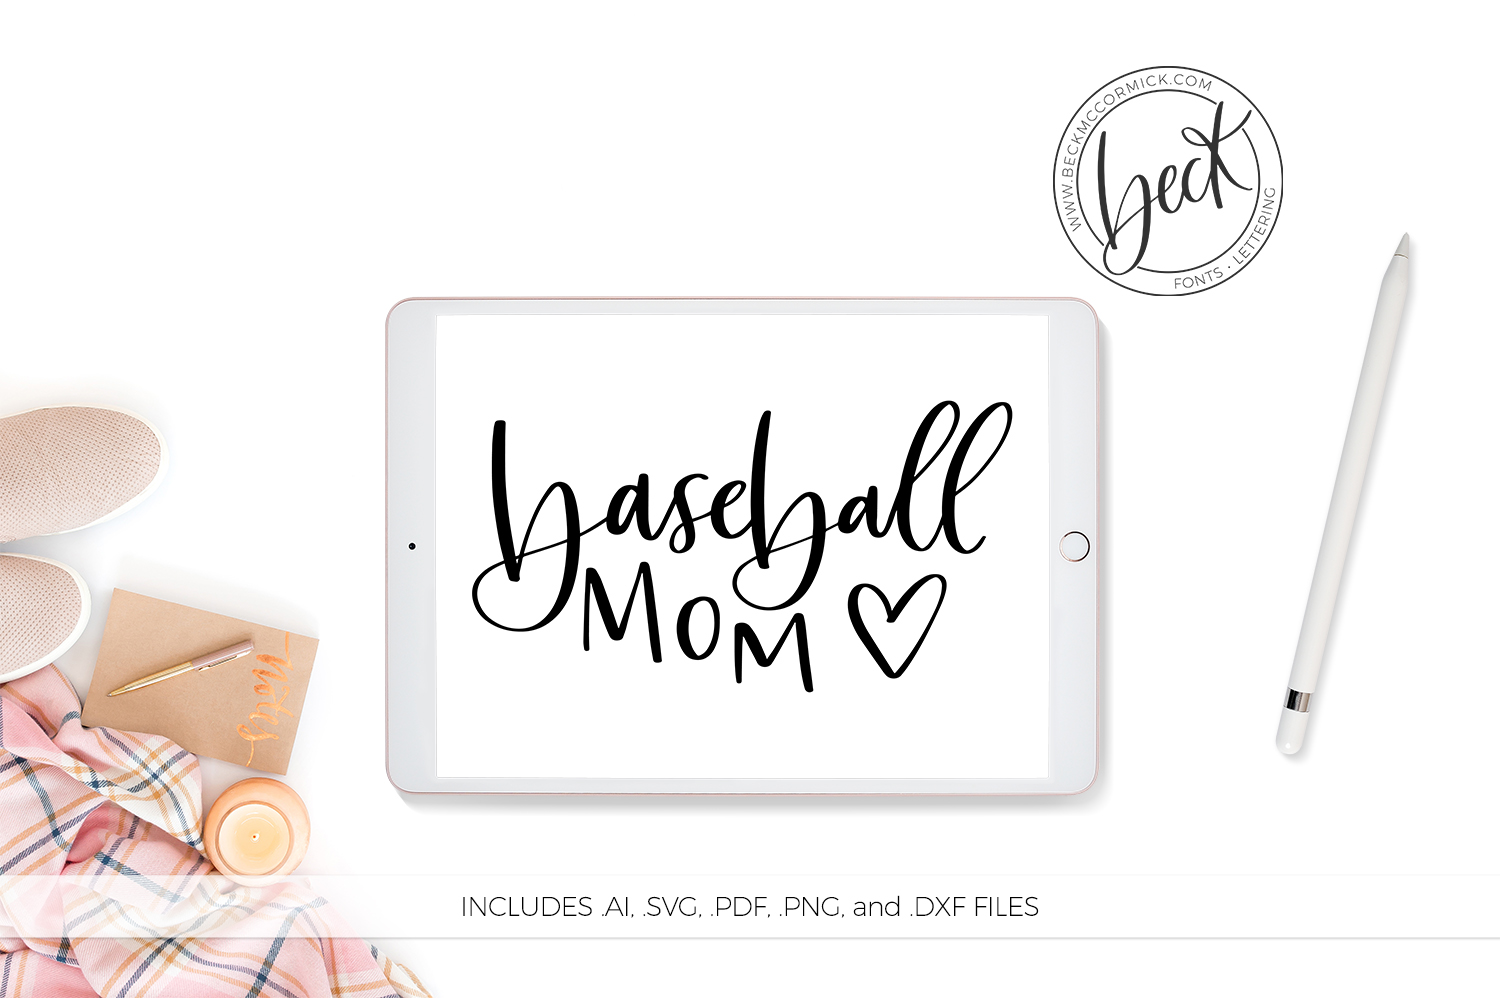 Download Free Baseball Mom Graphic By Beckmccormick Creative Fabrica for Cricut Explore, Silhouette and other cutting machines.